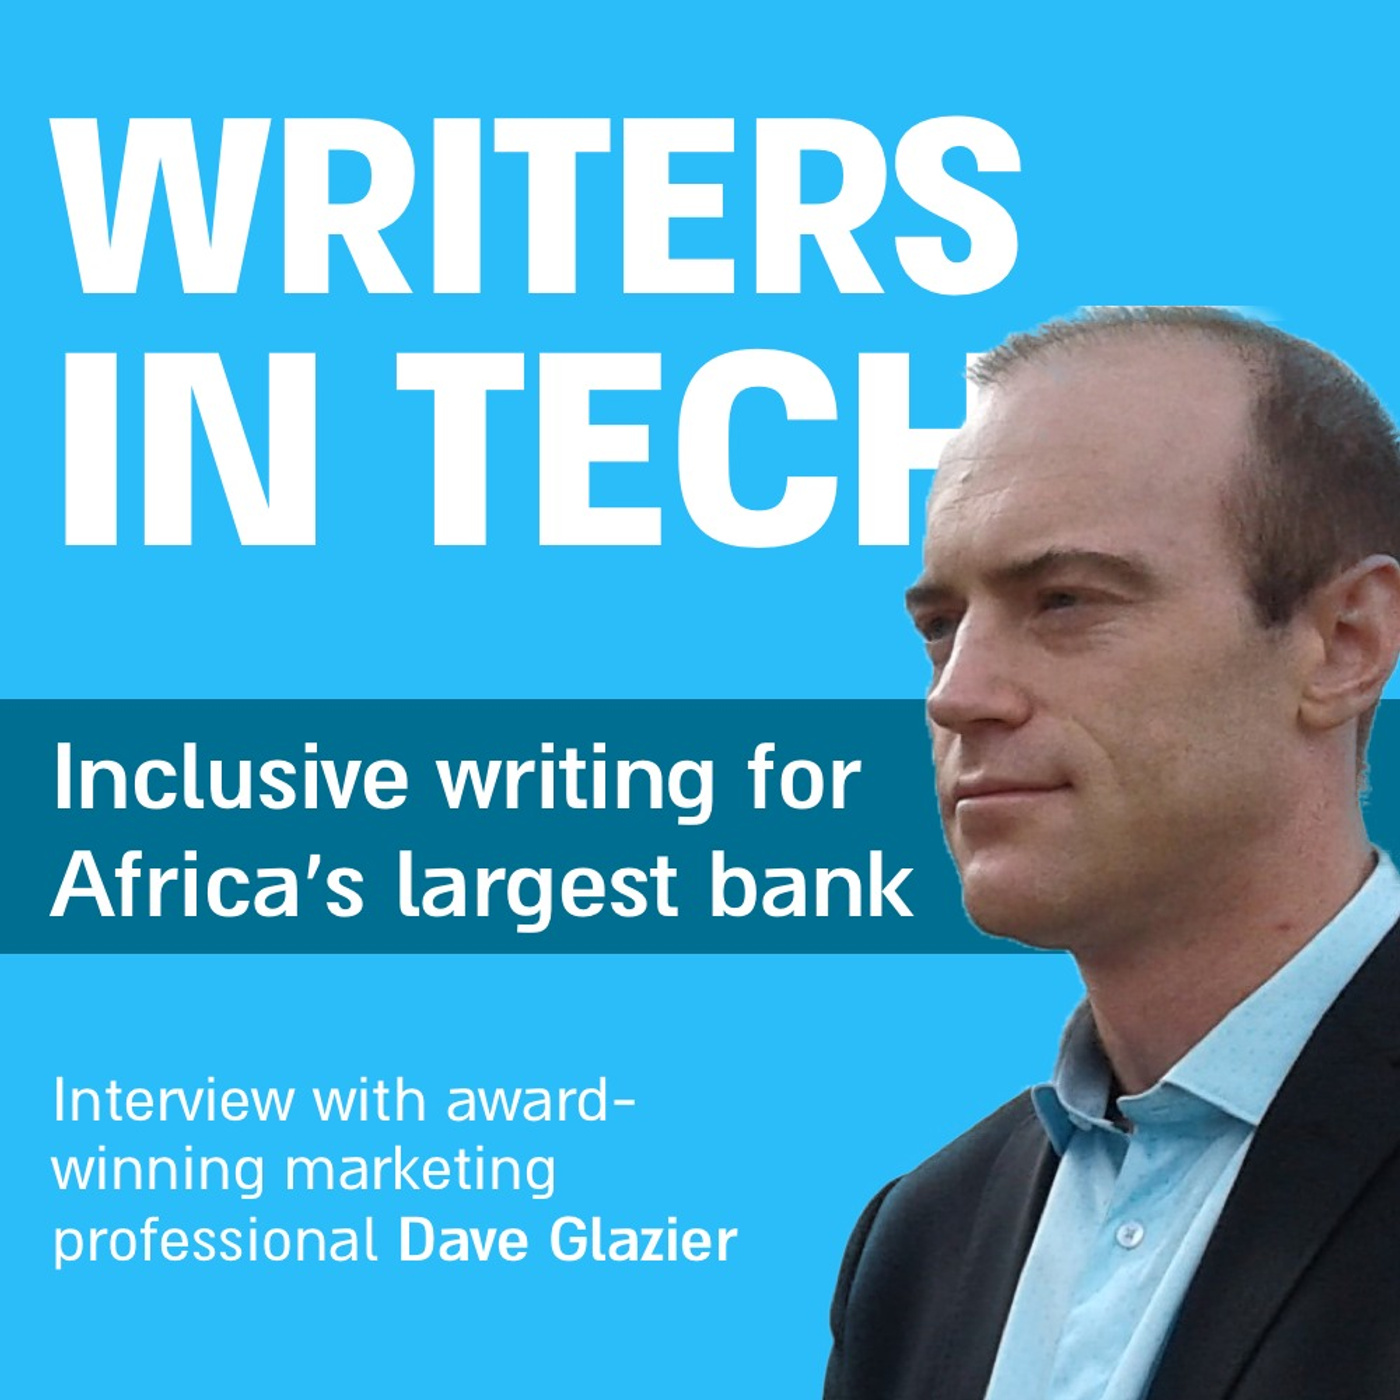 Inclusive writing for Africa's largest banking app   Interview with award-winning marketing professional Dave Glazier